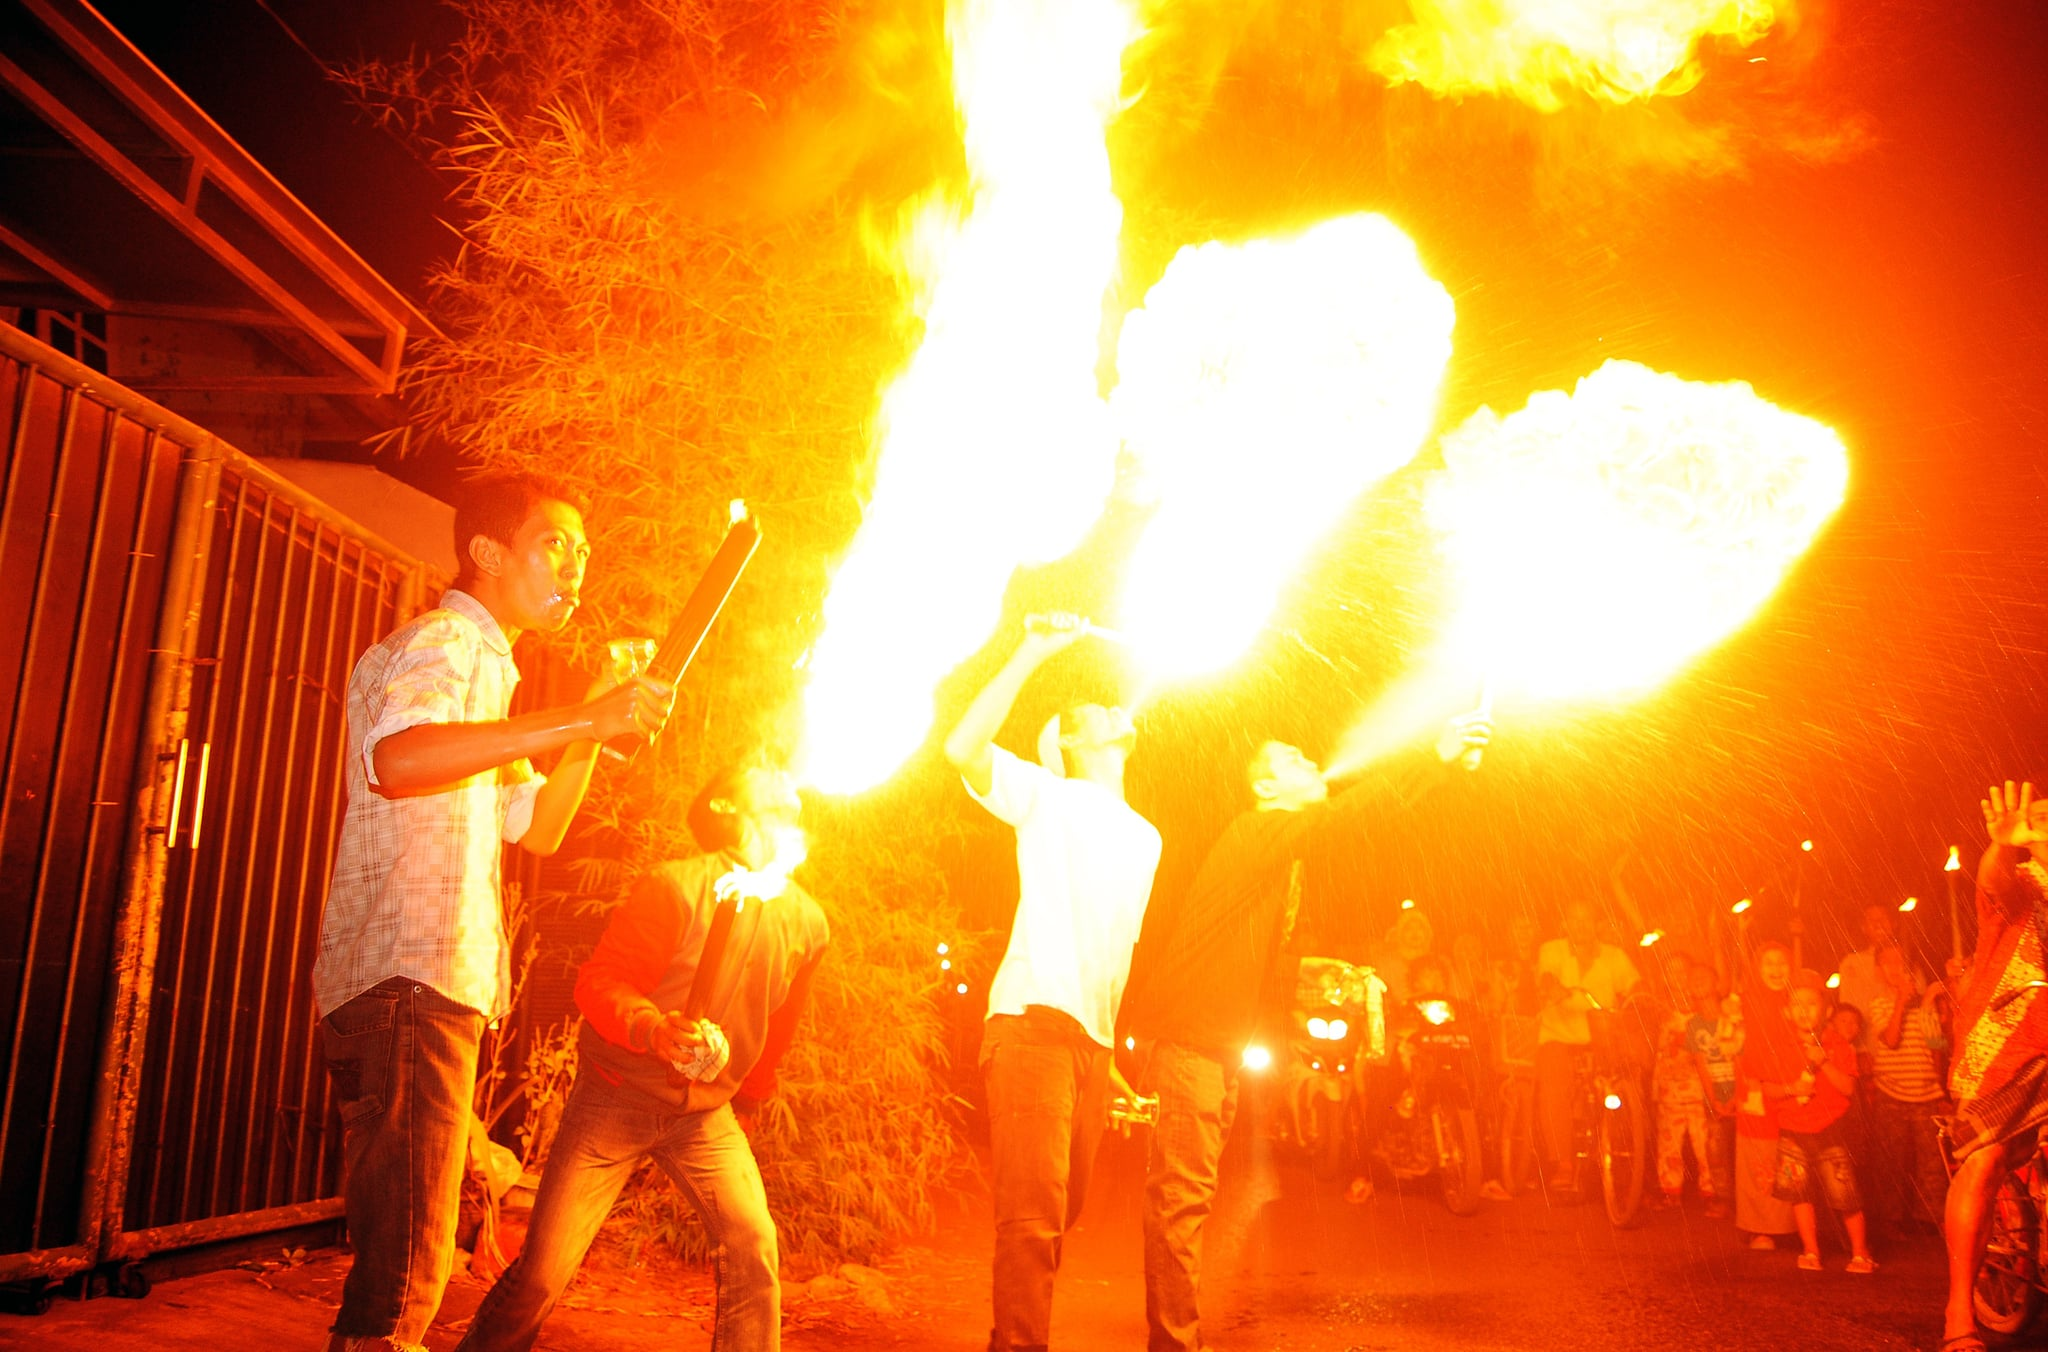 Fire lit up the air during a celebration in Sidoarjo, Indonesia.